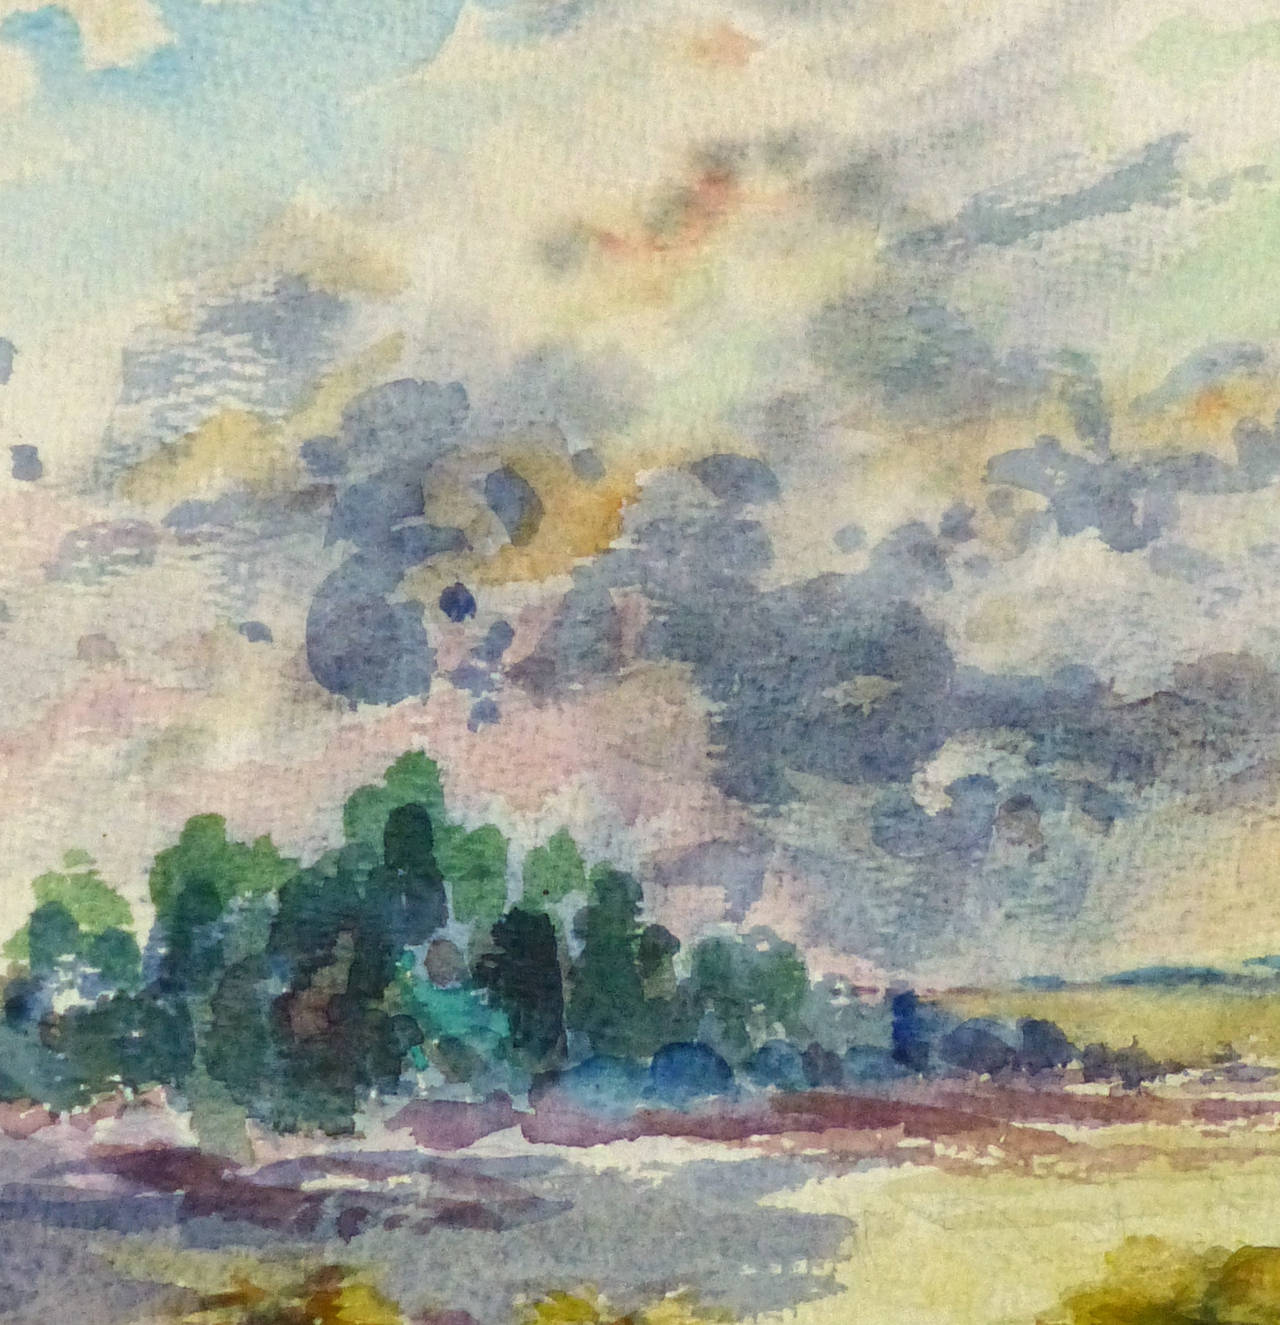 Vintage French Watercolor Landscape - The Hay Field - Art by Roger Tochon